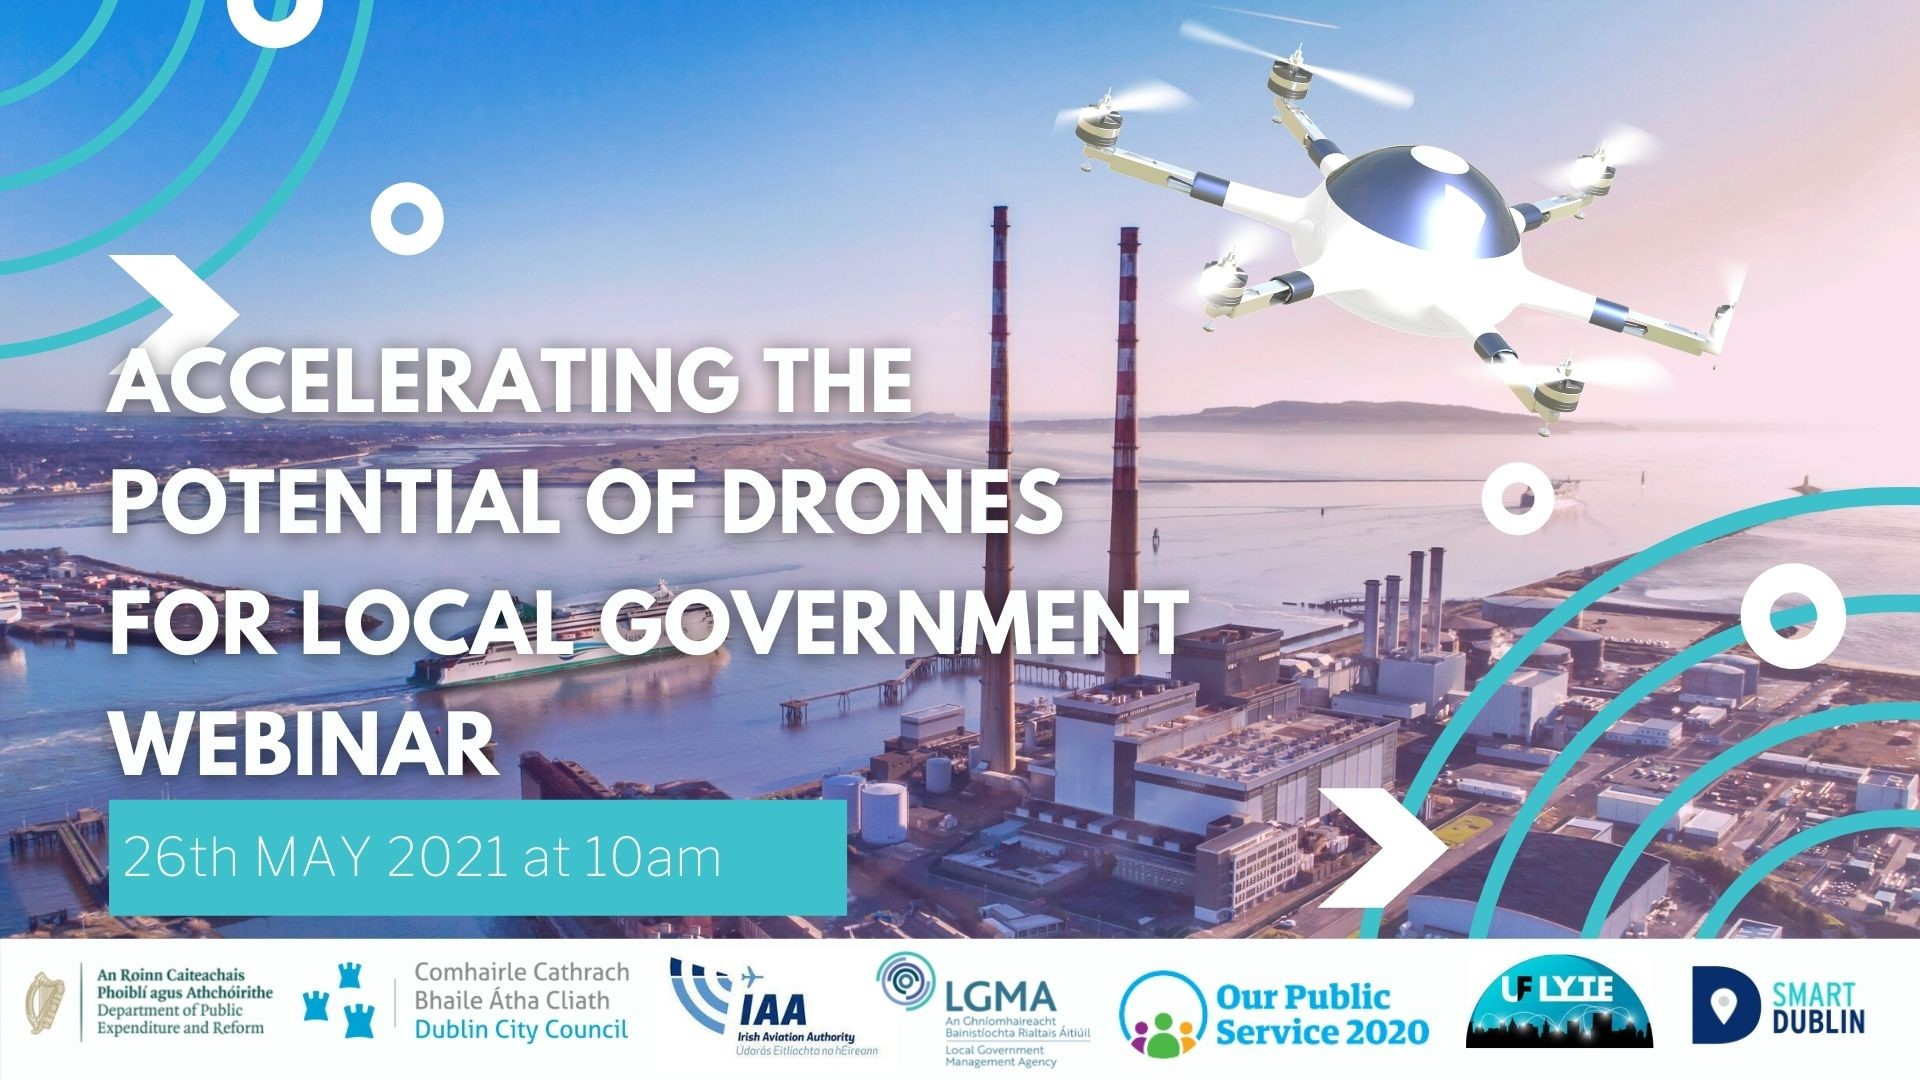 Accelerating the Potential of Drones for Local Government